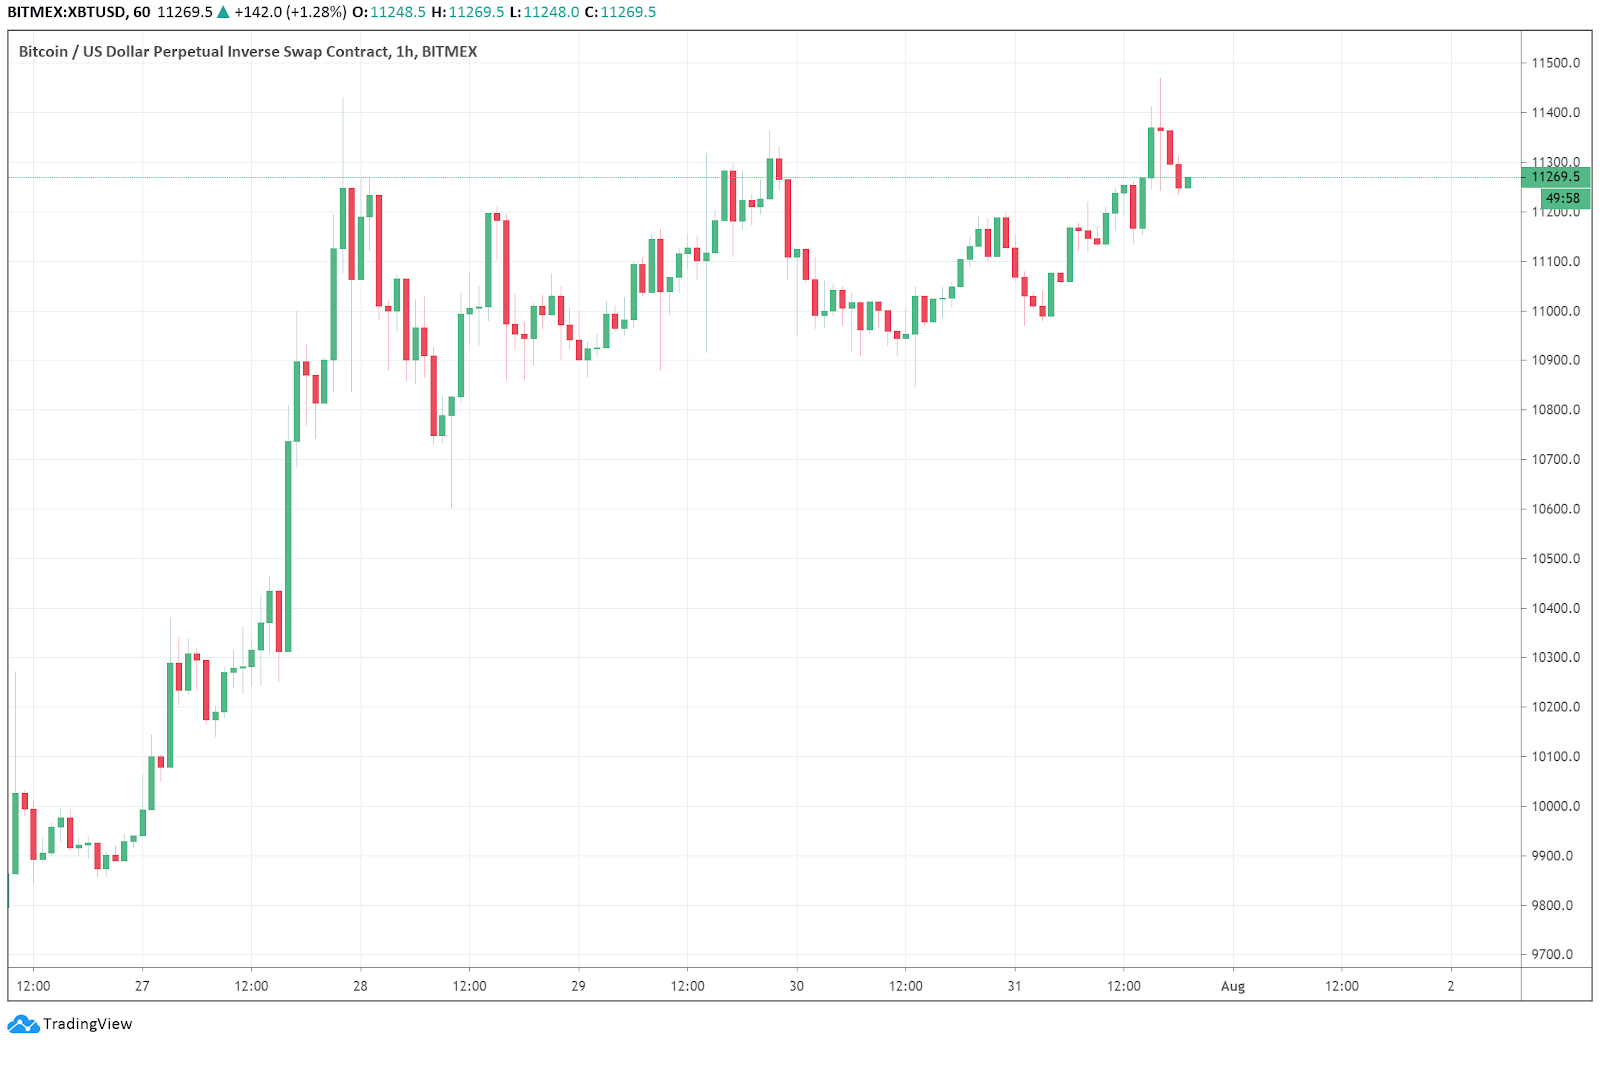 The 1-hour price chart of Bitcoin. Source: TradingView.com